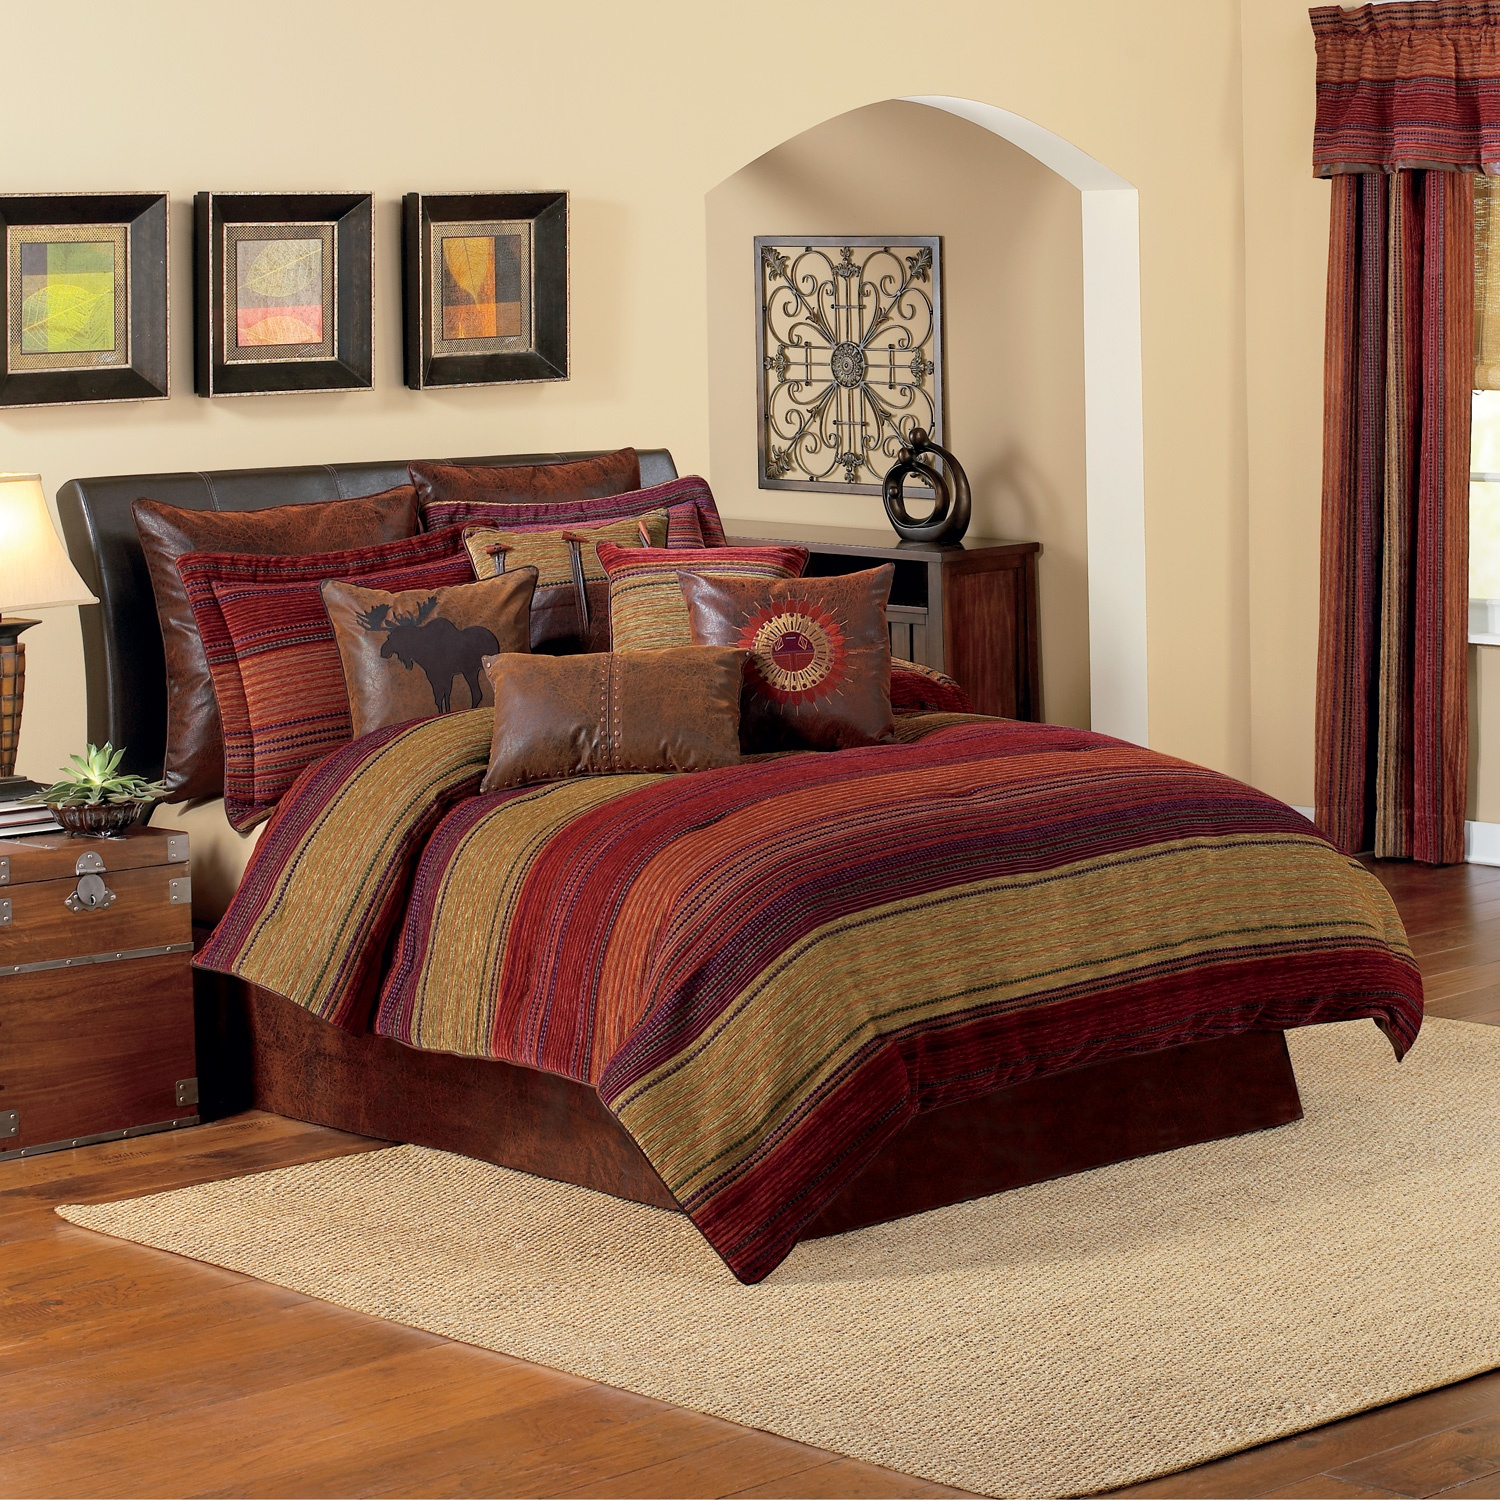 Beautiful Comforters Sets for Bedroom Design: Comfy Comforters Sets For Bedroom Design With Queen Comforter Sets